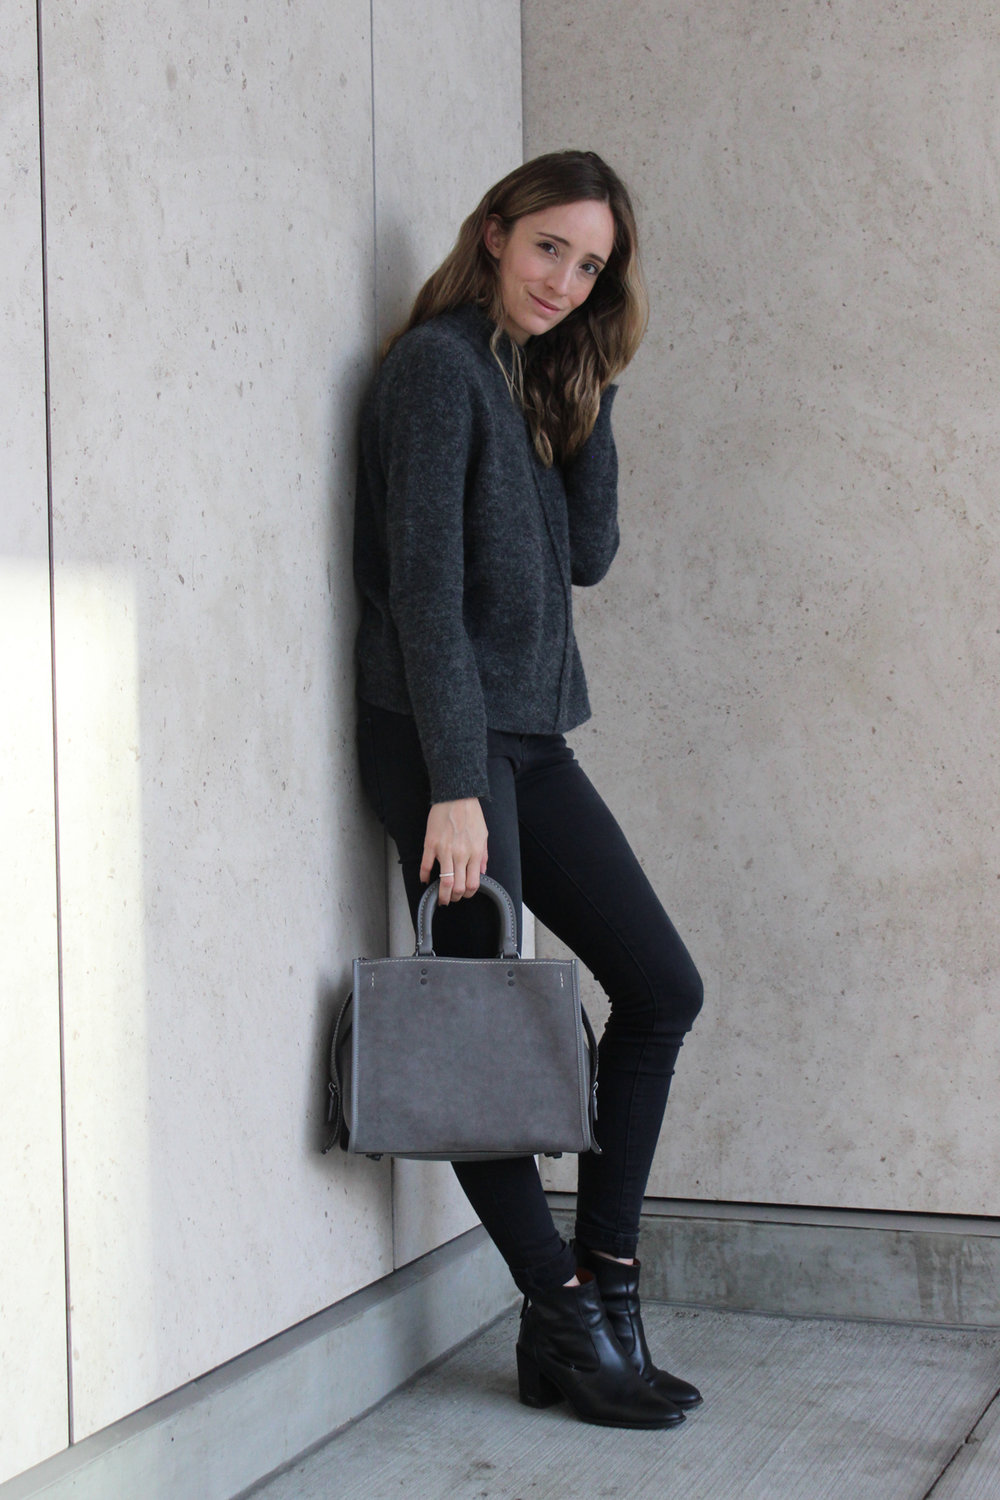 Wilfred Free pullover  /  Just USA jeans  /  Coach Rogue bag  /  Madewell boots (similar)